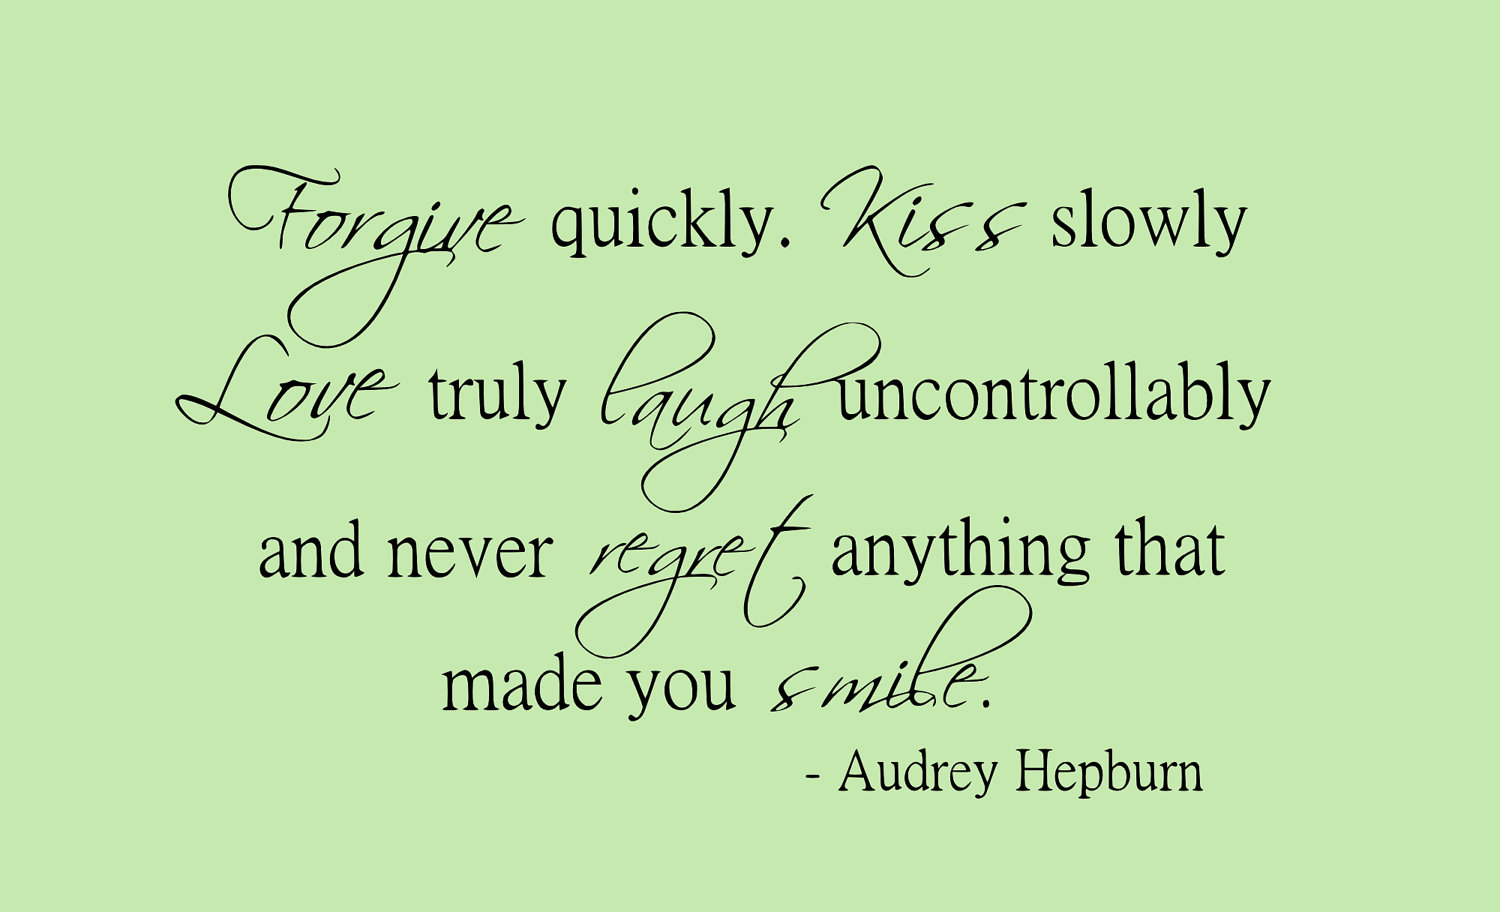 Smile Laugh Love Quotes Audrey Hepburn  Forgive Quicklykiss Slowly Frame The Phrase